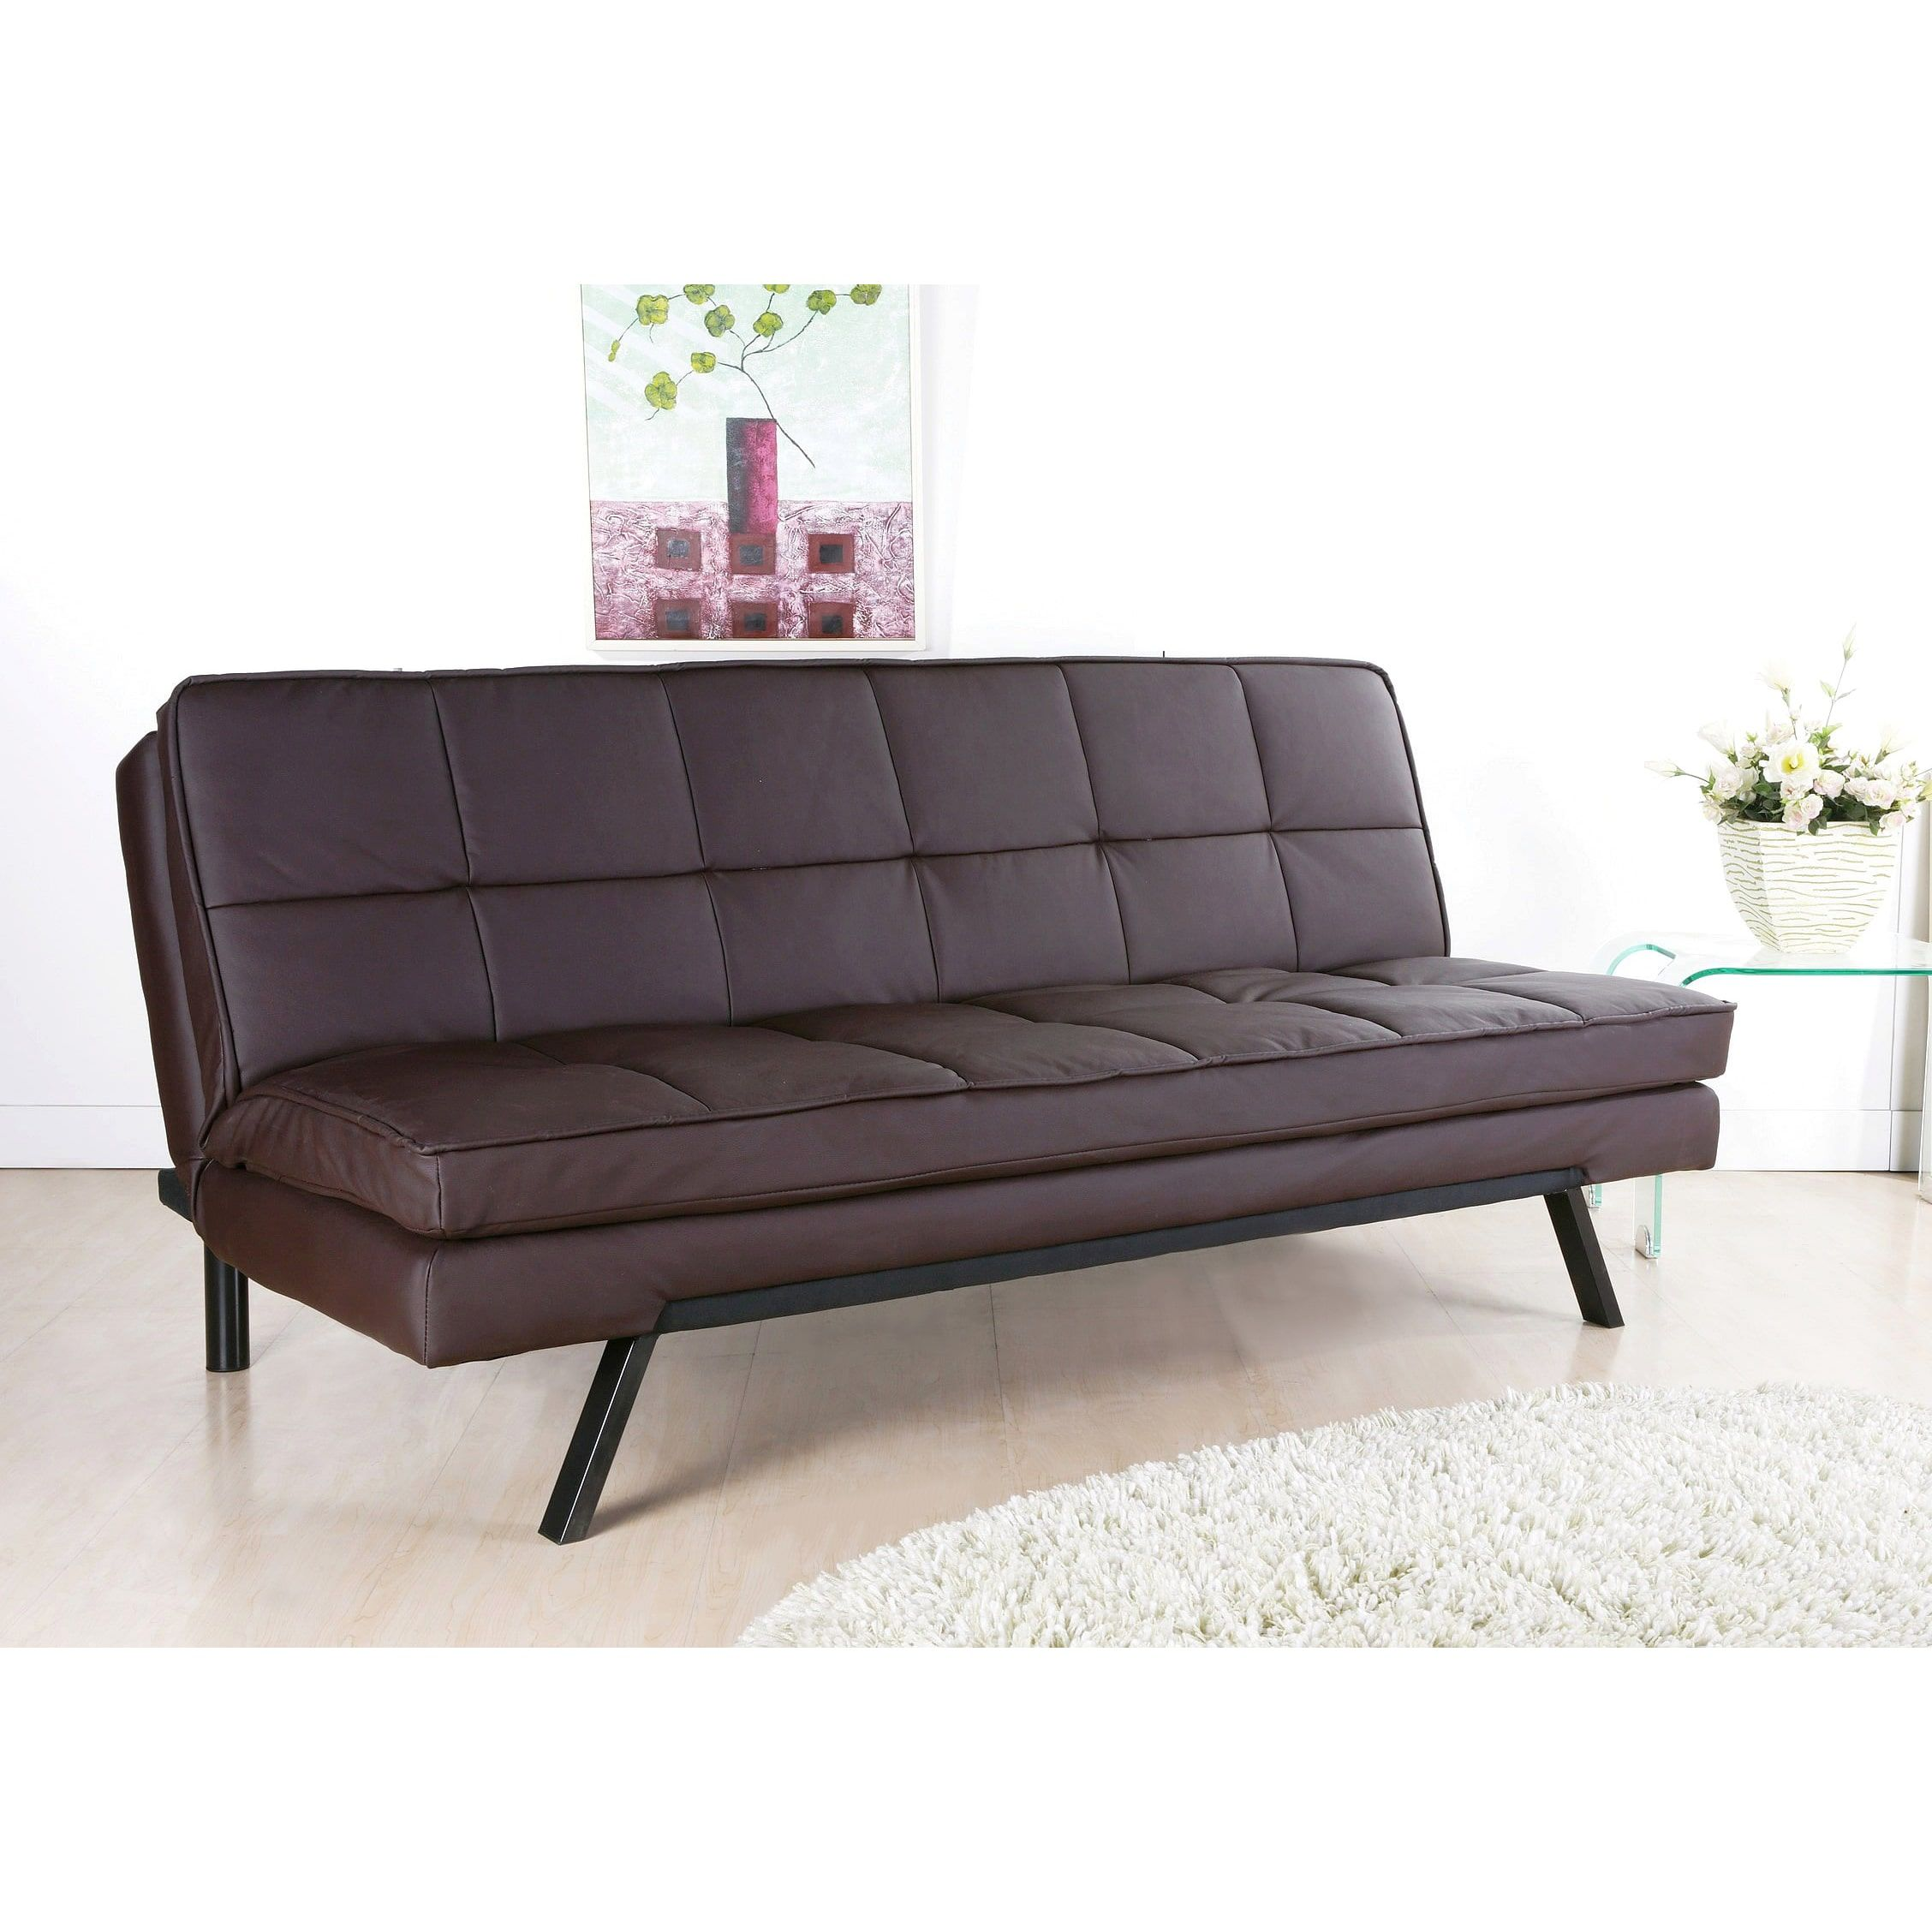 Futons Add Soft And Versatile Seating To Your Home With Stylish Save E